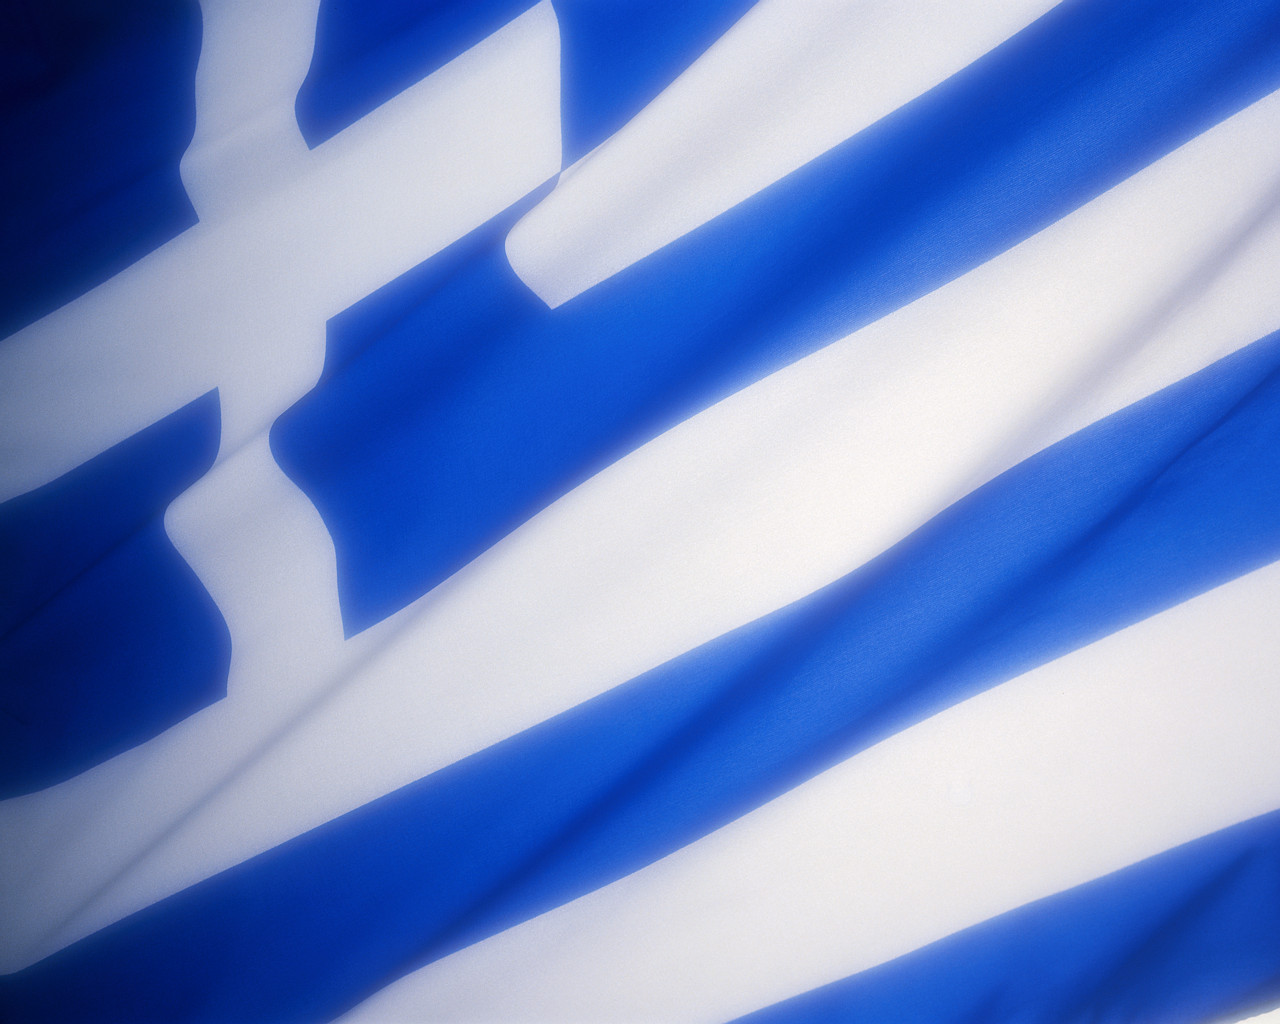 Greece Wallpaper Greek Flag PC Android iPhone and iPad Wallpapers 1280x1024